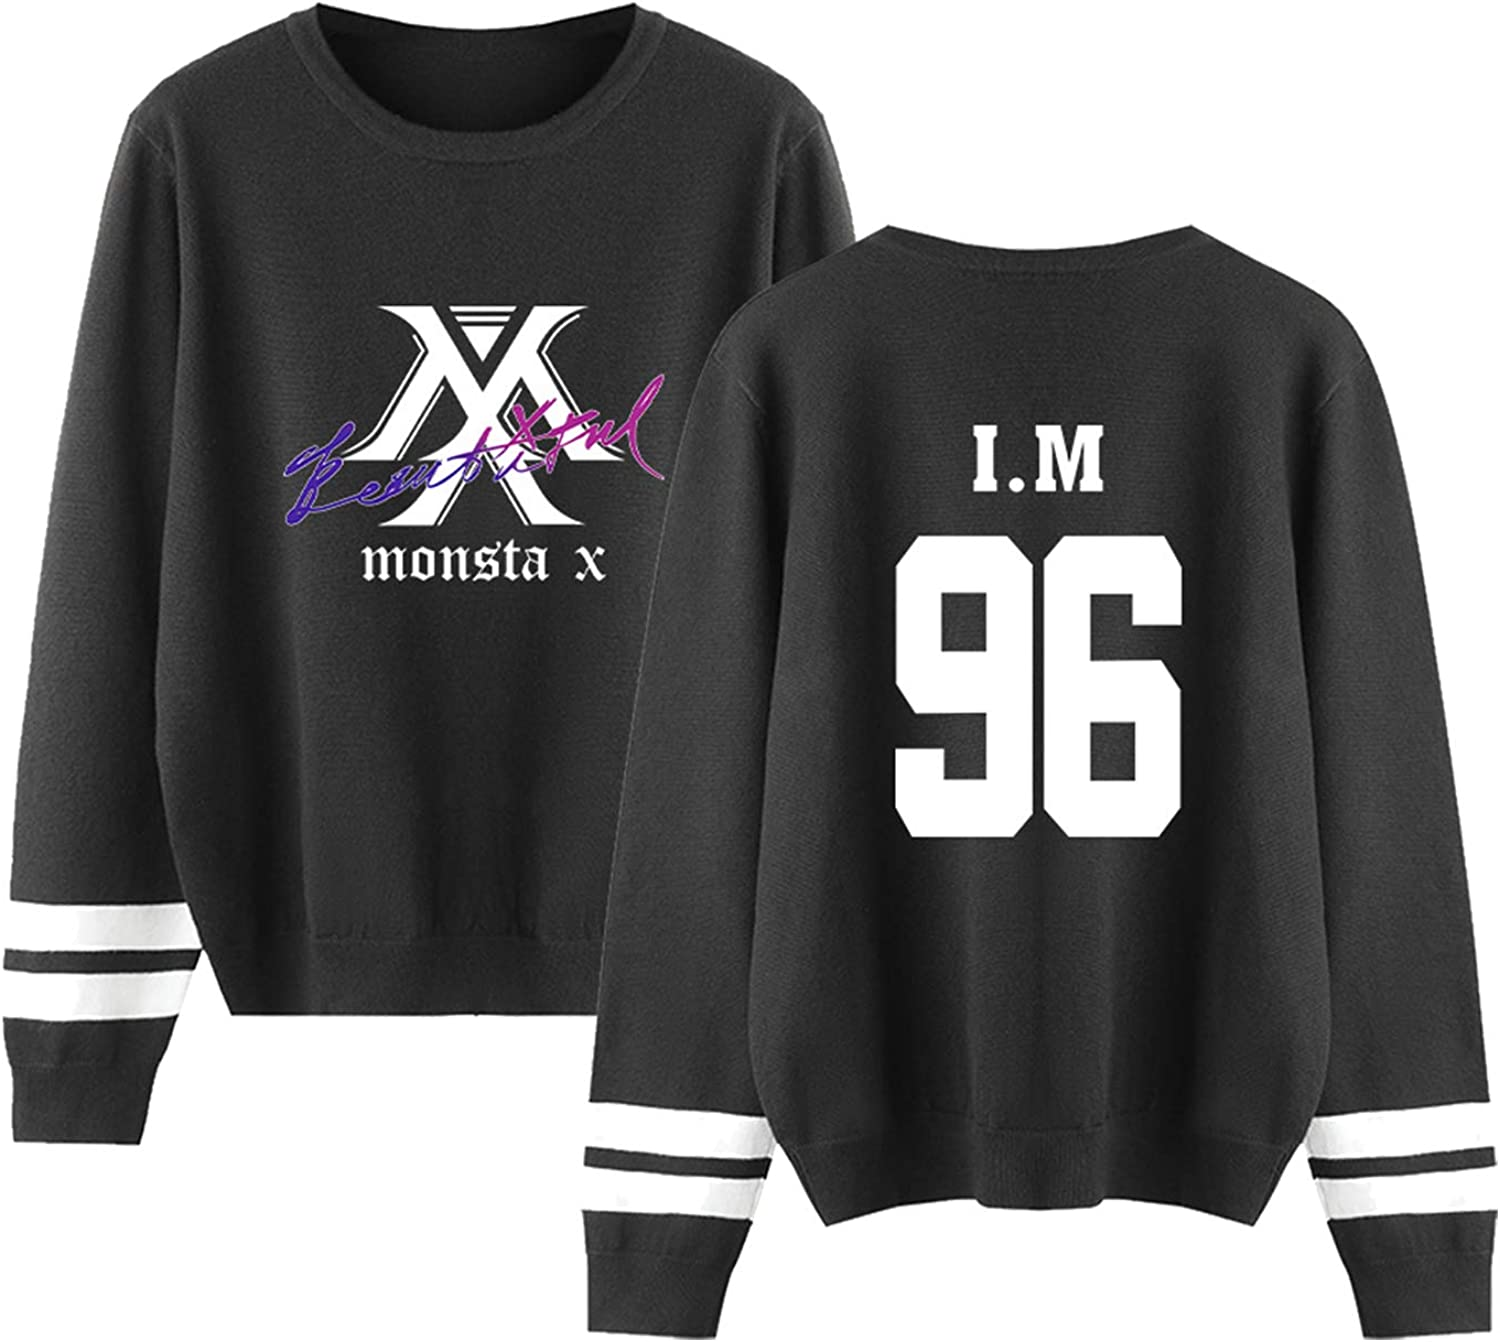 Xkpopfans Kpop Monsta X Hoodie New Album Sweatshirt Shownu I.M Minhyuk Cardigan Sweater